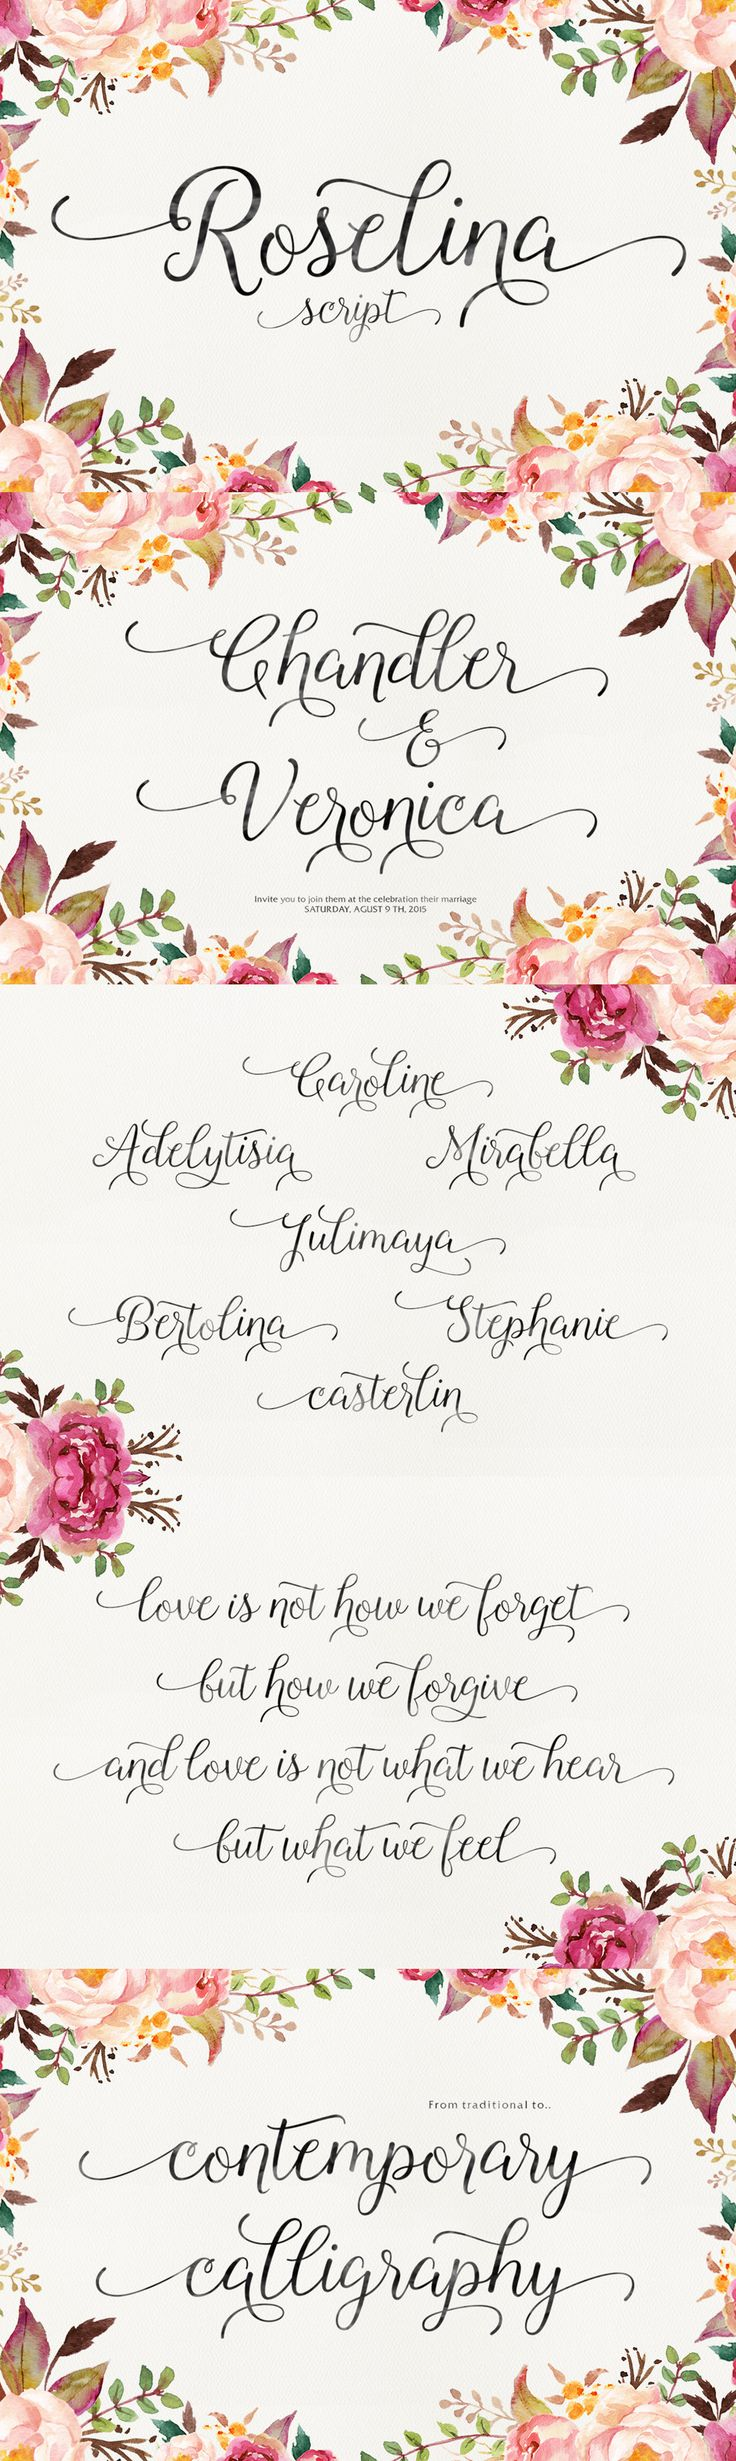 Roselina - Roselina Script is a contemporary calligraphy, with a vintage feel, style calligraphy with movin...